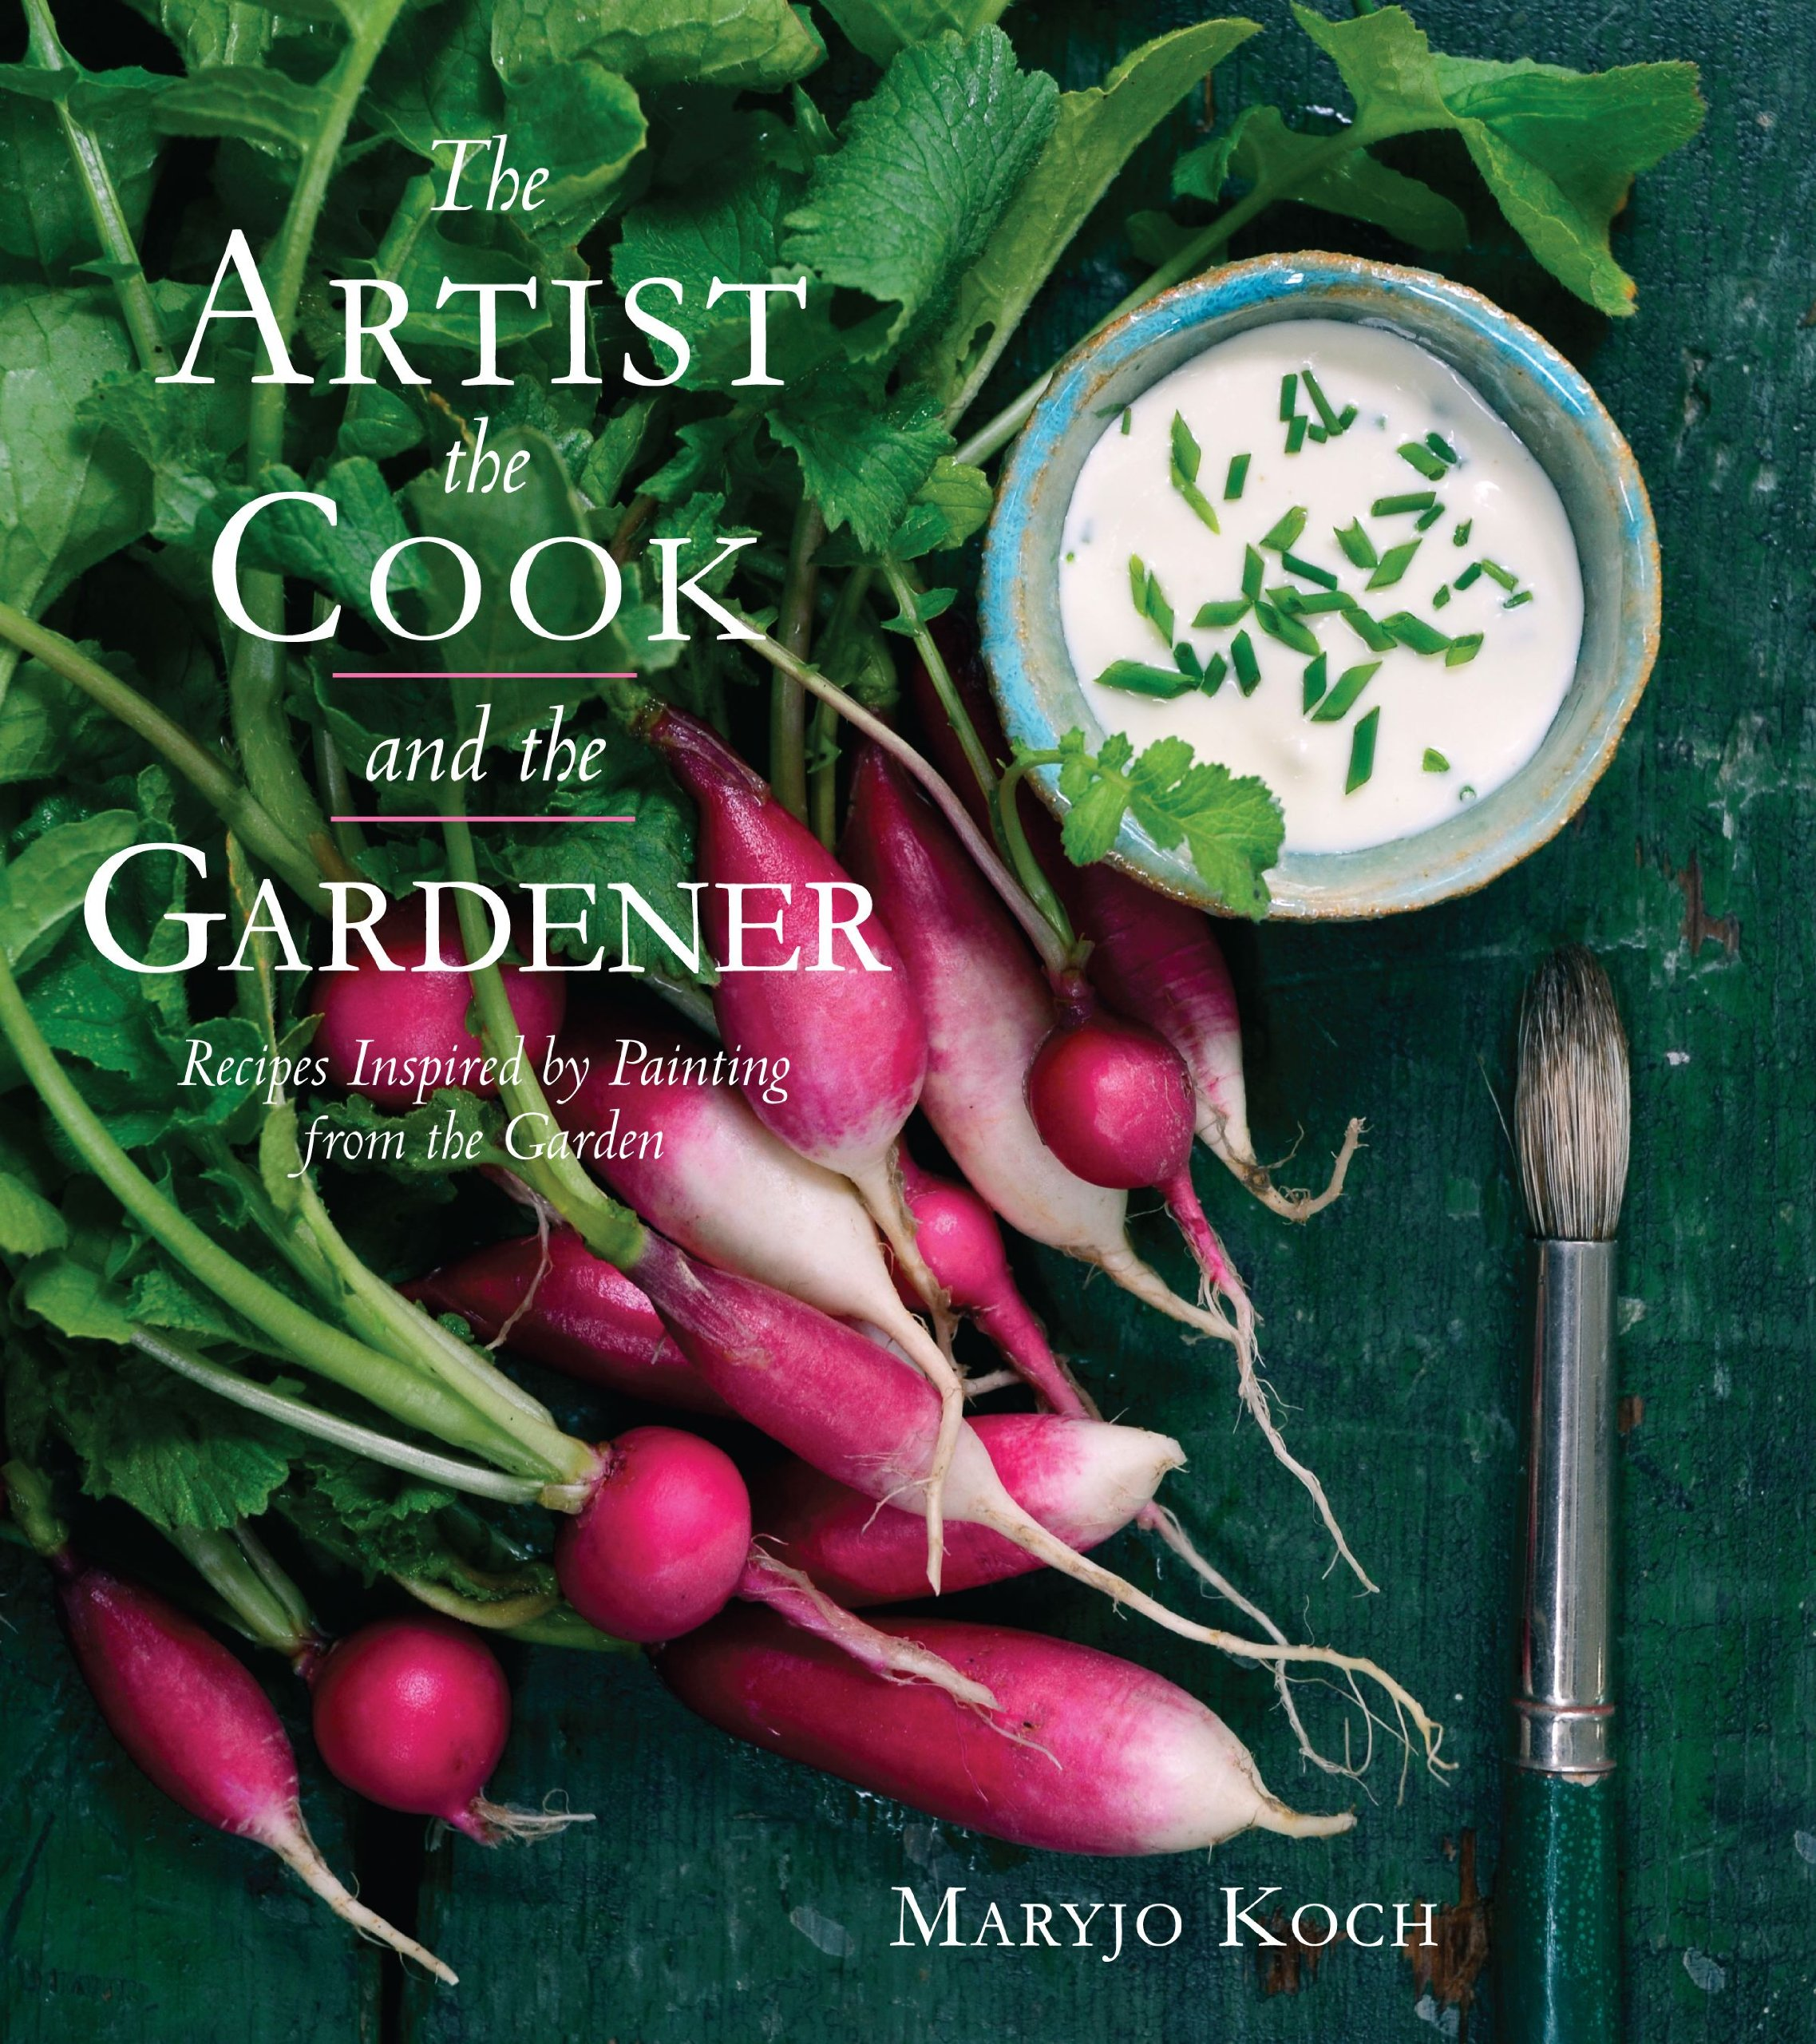 the artist the cook and the gardener recipes inspired by painting from the garden maryjo koch jenny barry 9781449421465 amazoncom books